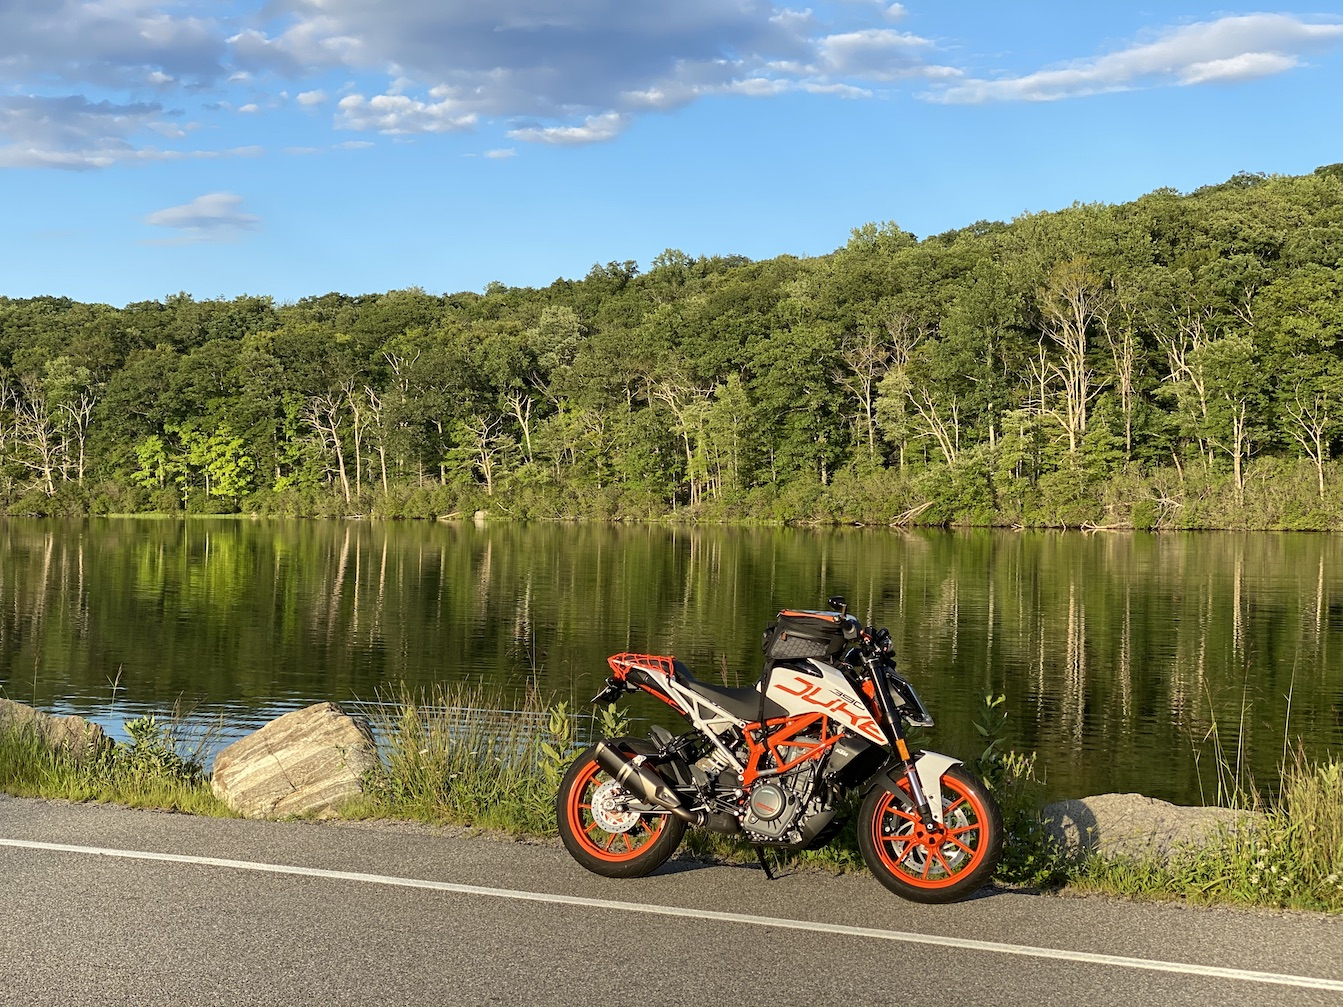 My Duke 390 sitting on the side of the road with a background of a pond and some woods reflecting on it.